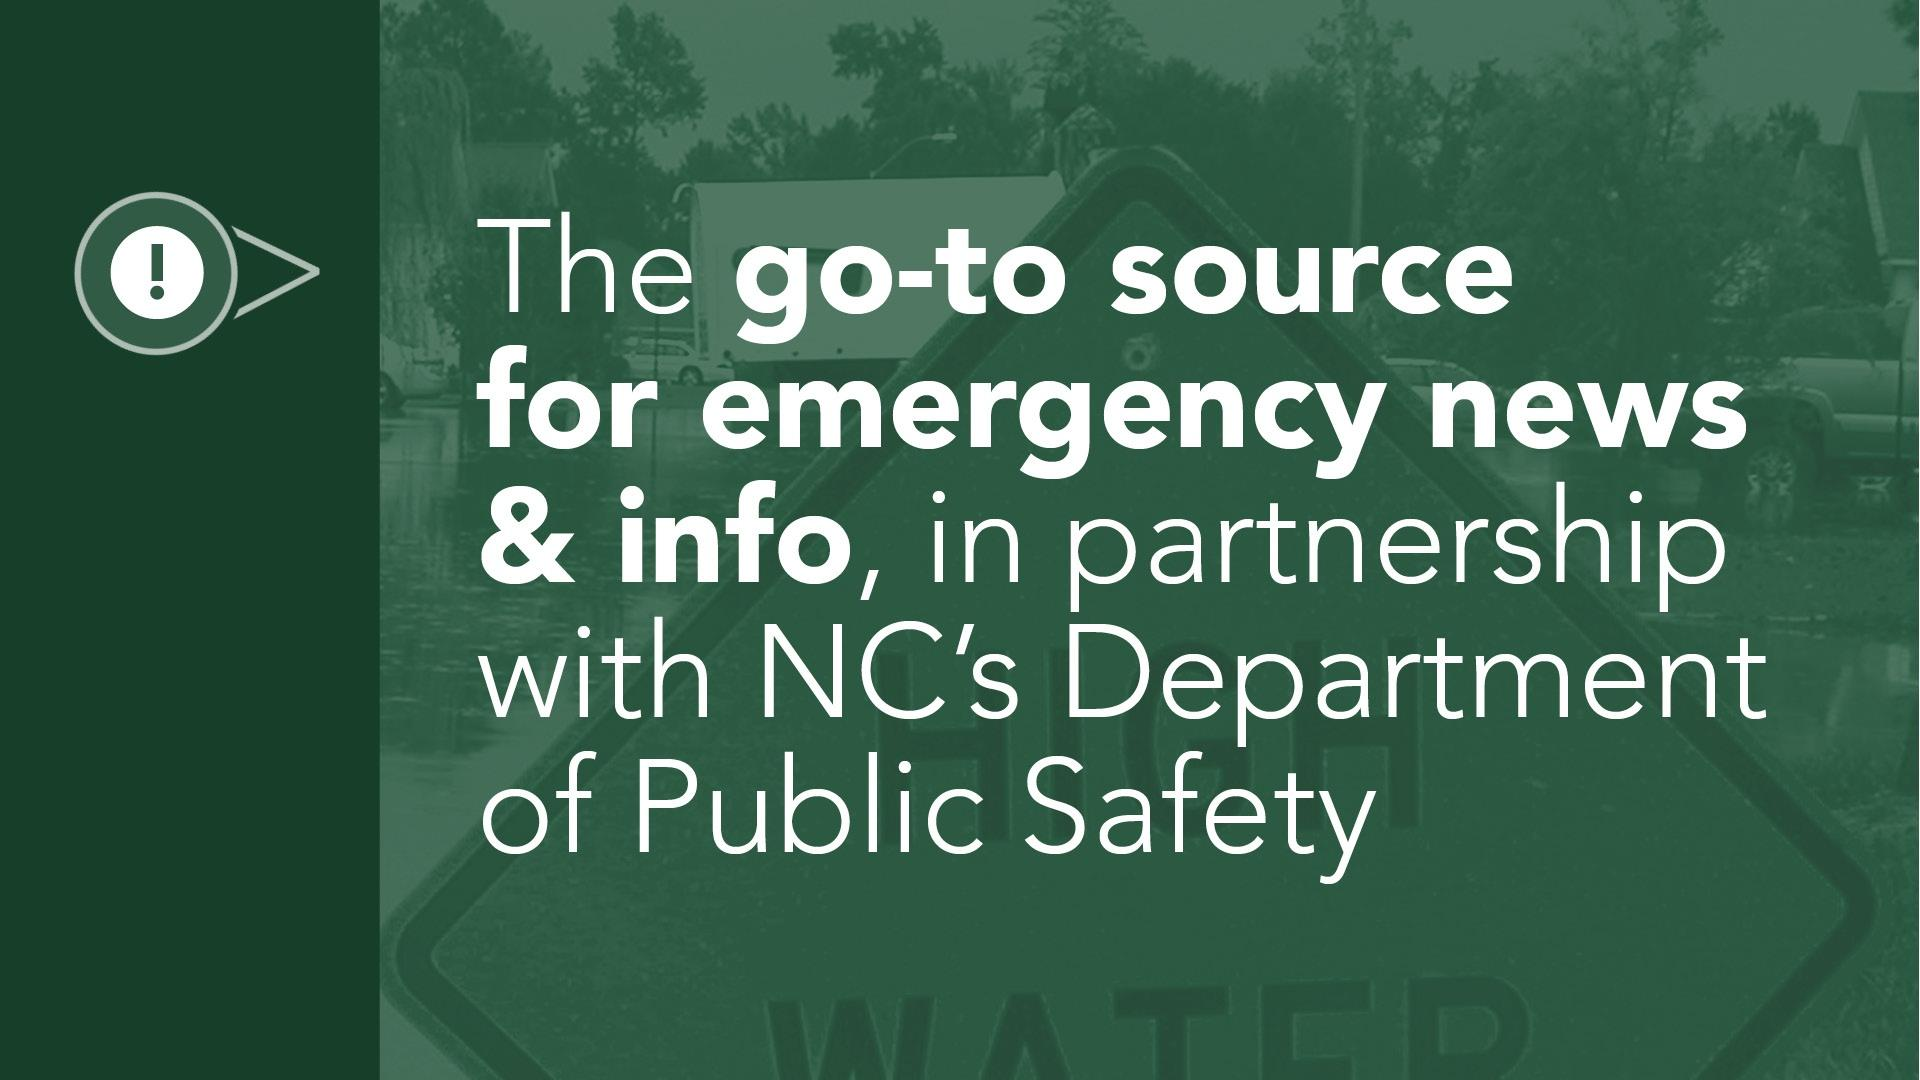 The go-to source for emergency news & info, in partnership with NC's Department of Public Safety